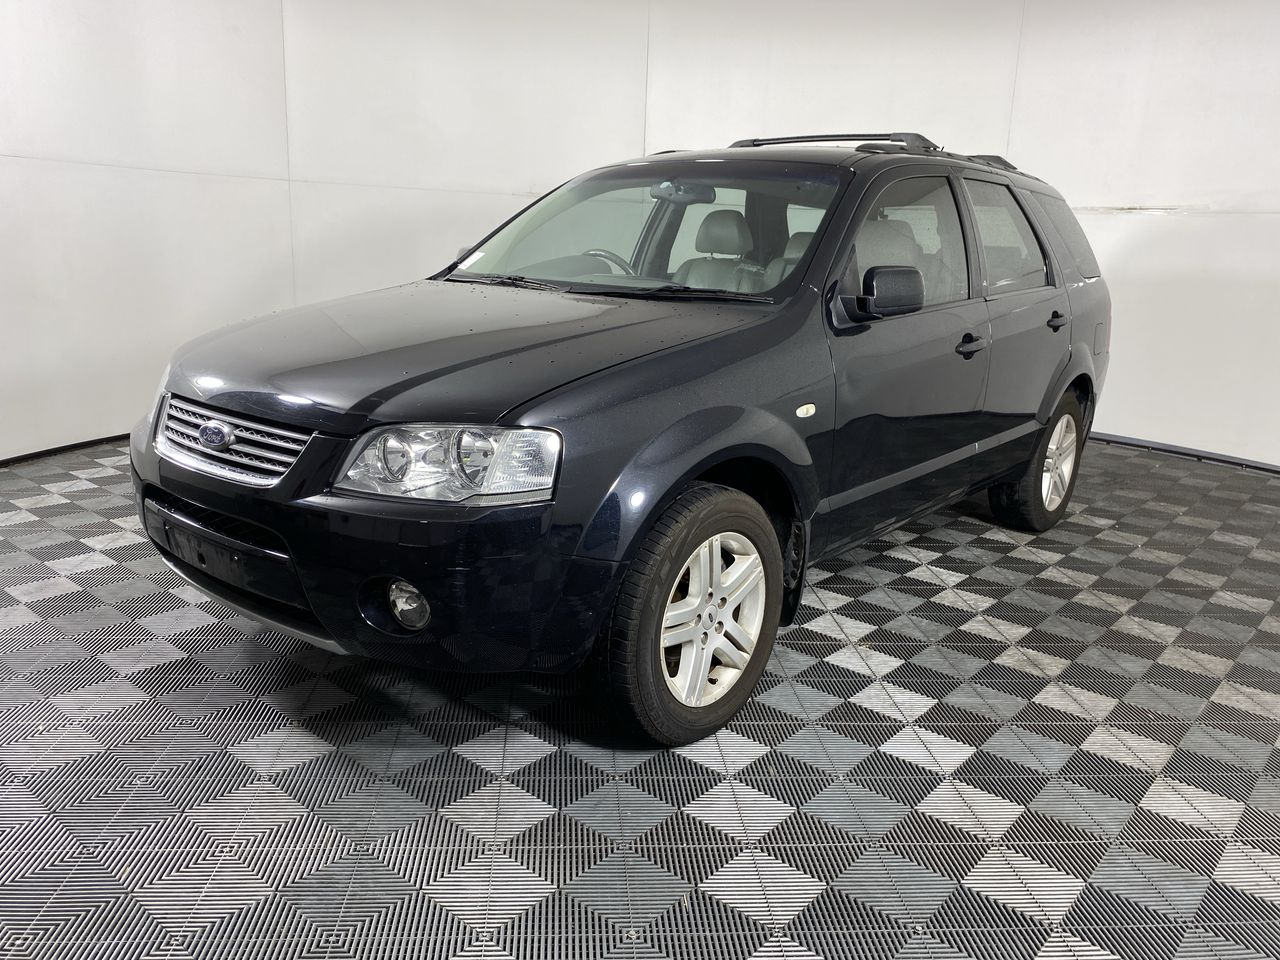 2006 Ford Territory Ghia (RWD) SY Automatic 7 Seats Wagon